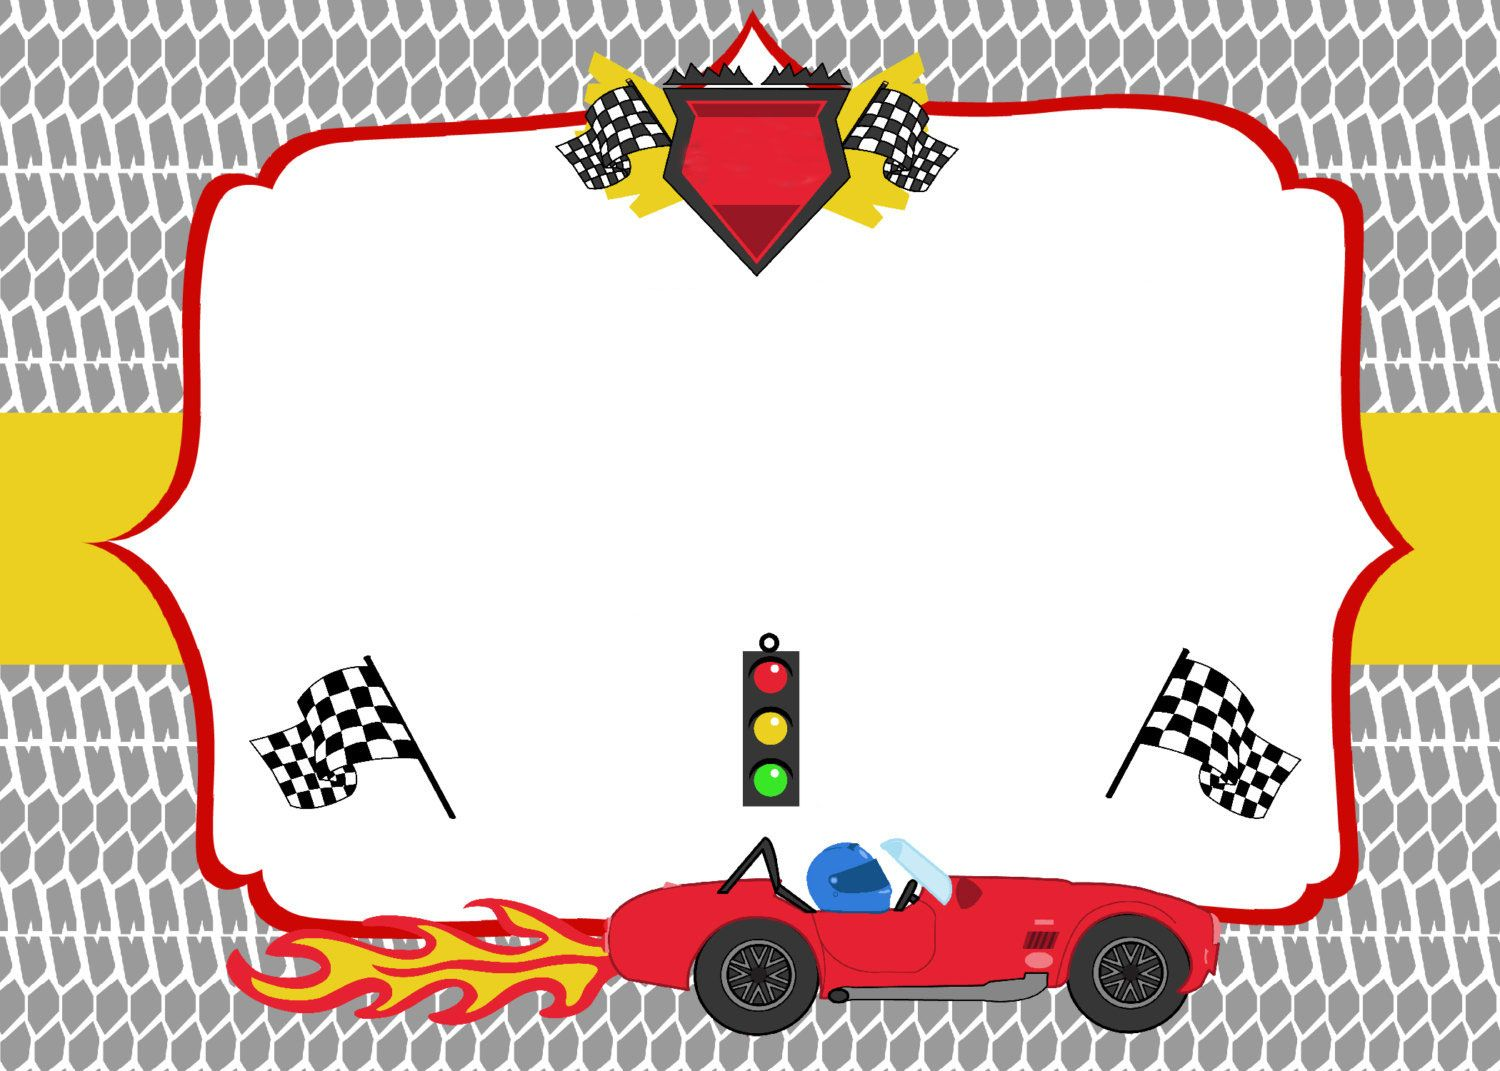 Cars Invitation Card Template Free: FREE Printable Race Car Birthday Party Invitations